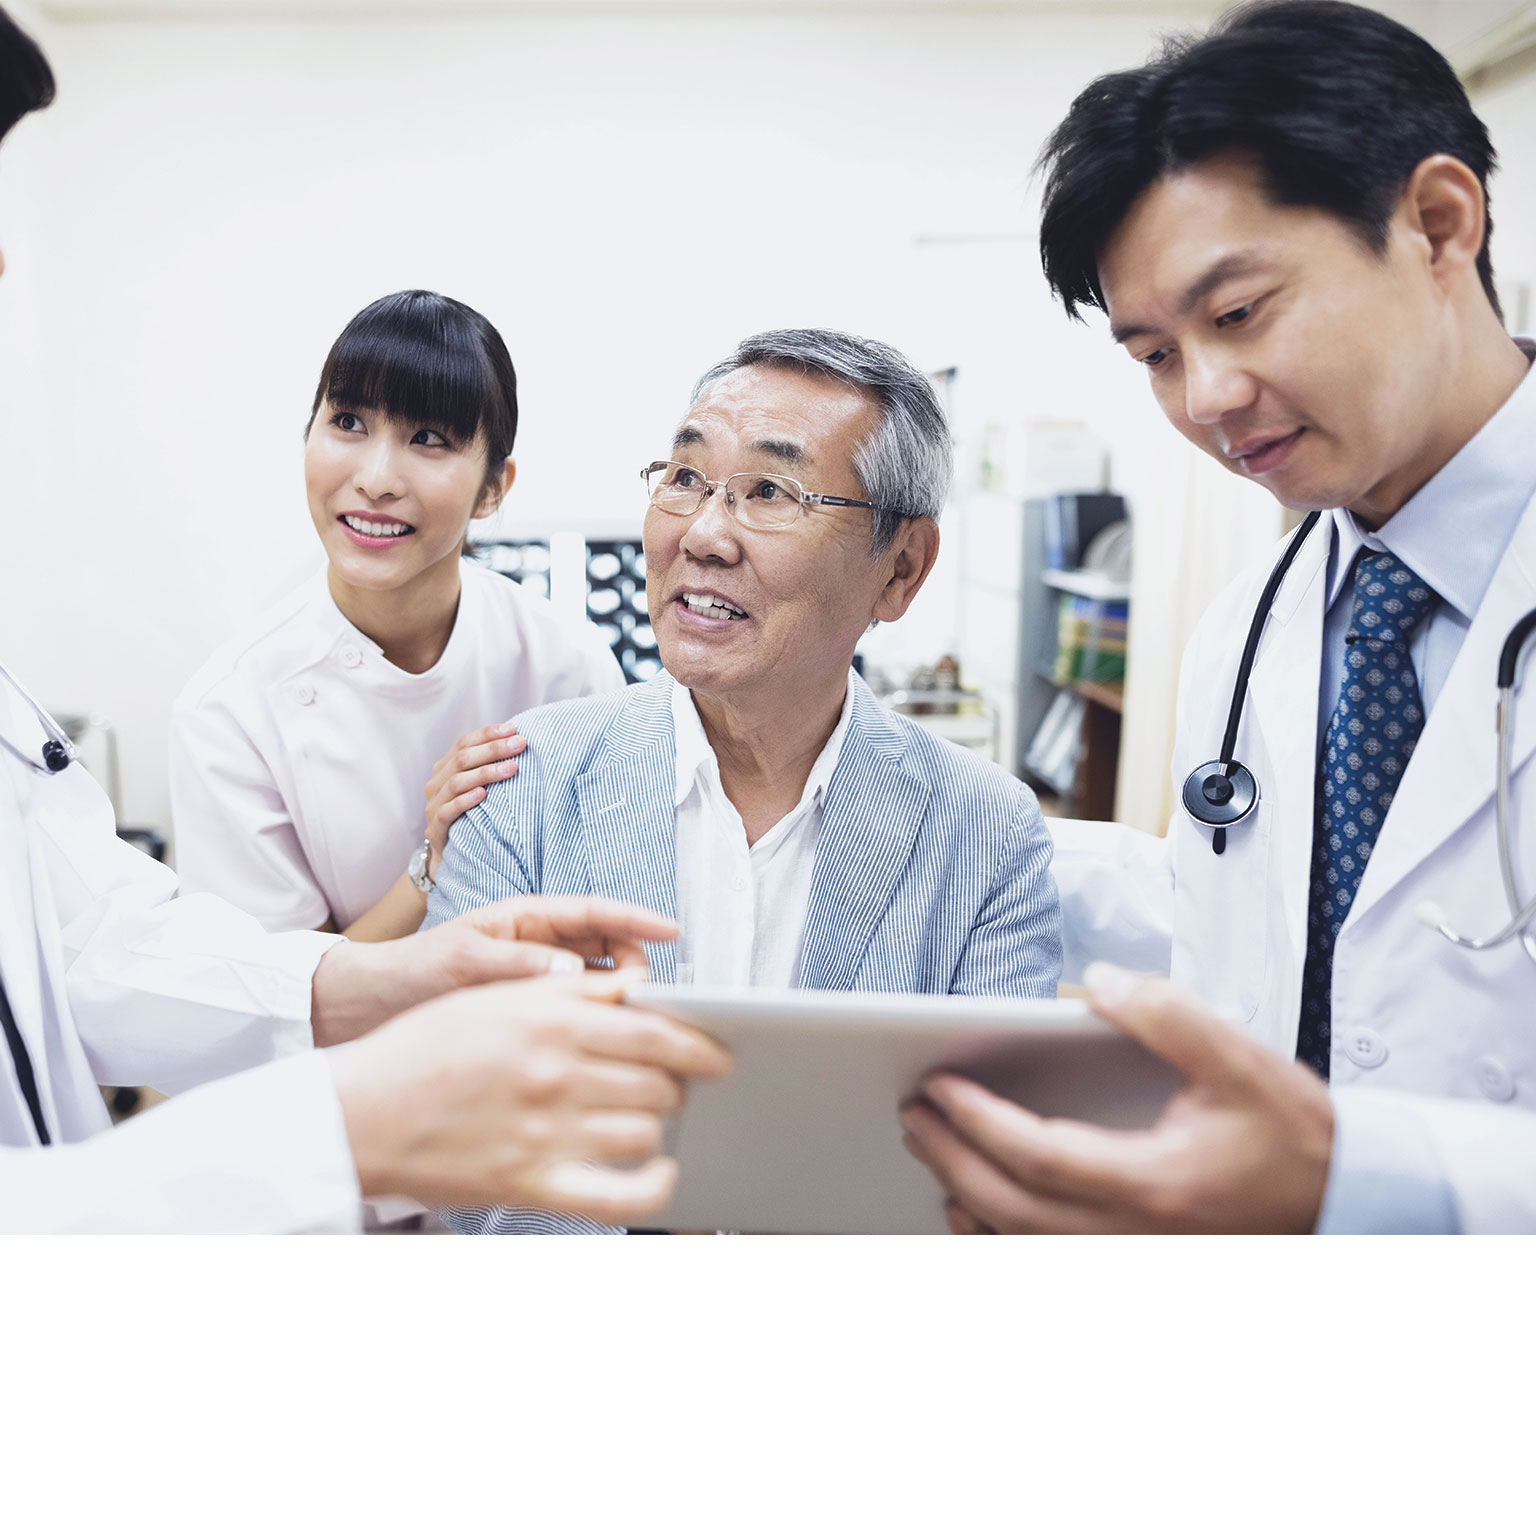 Finding the future of care provision: the role of smart hospitals